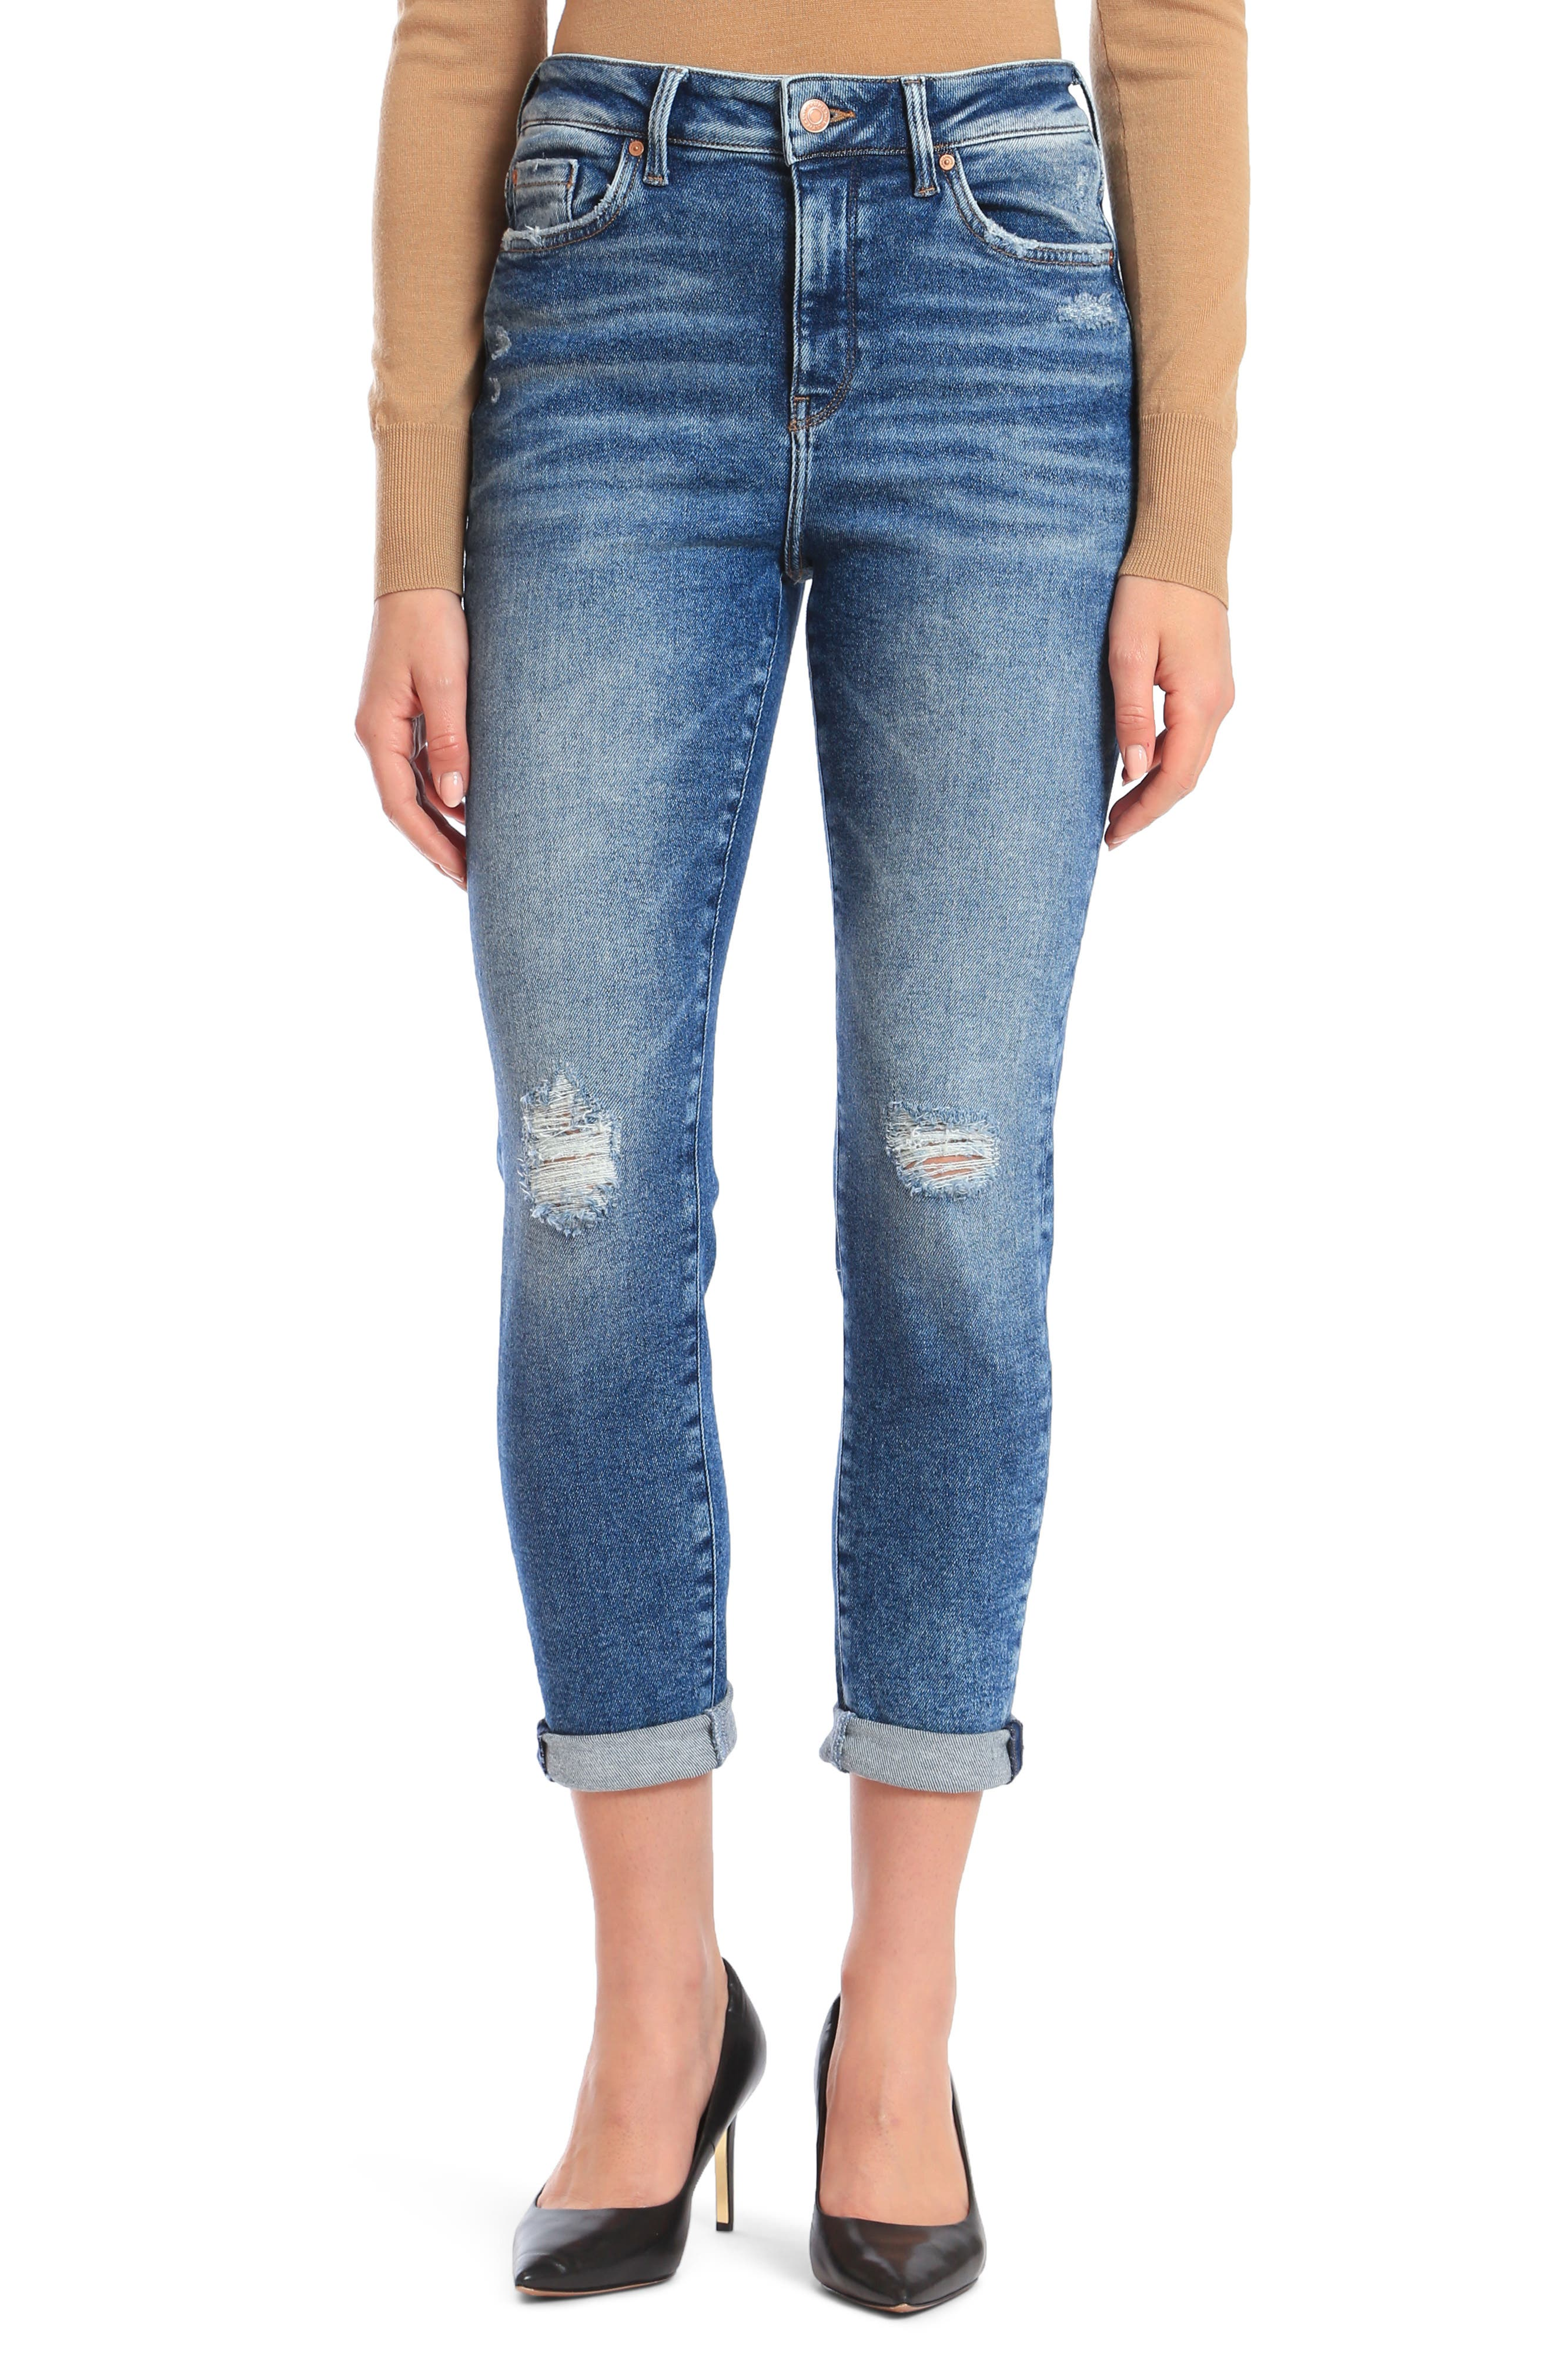 Classic mom jeans are updated for the modern era with a flattering high rise, shredded knees and a vintage blue wash. Style Name: Mavi Jeans Cindy Ripped High Waist Crop Mom Jeans (La Vintage). Style Number: 5921698. Available in stores.